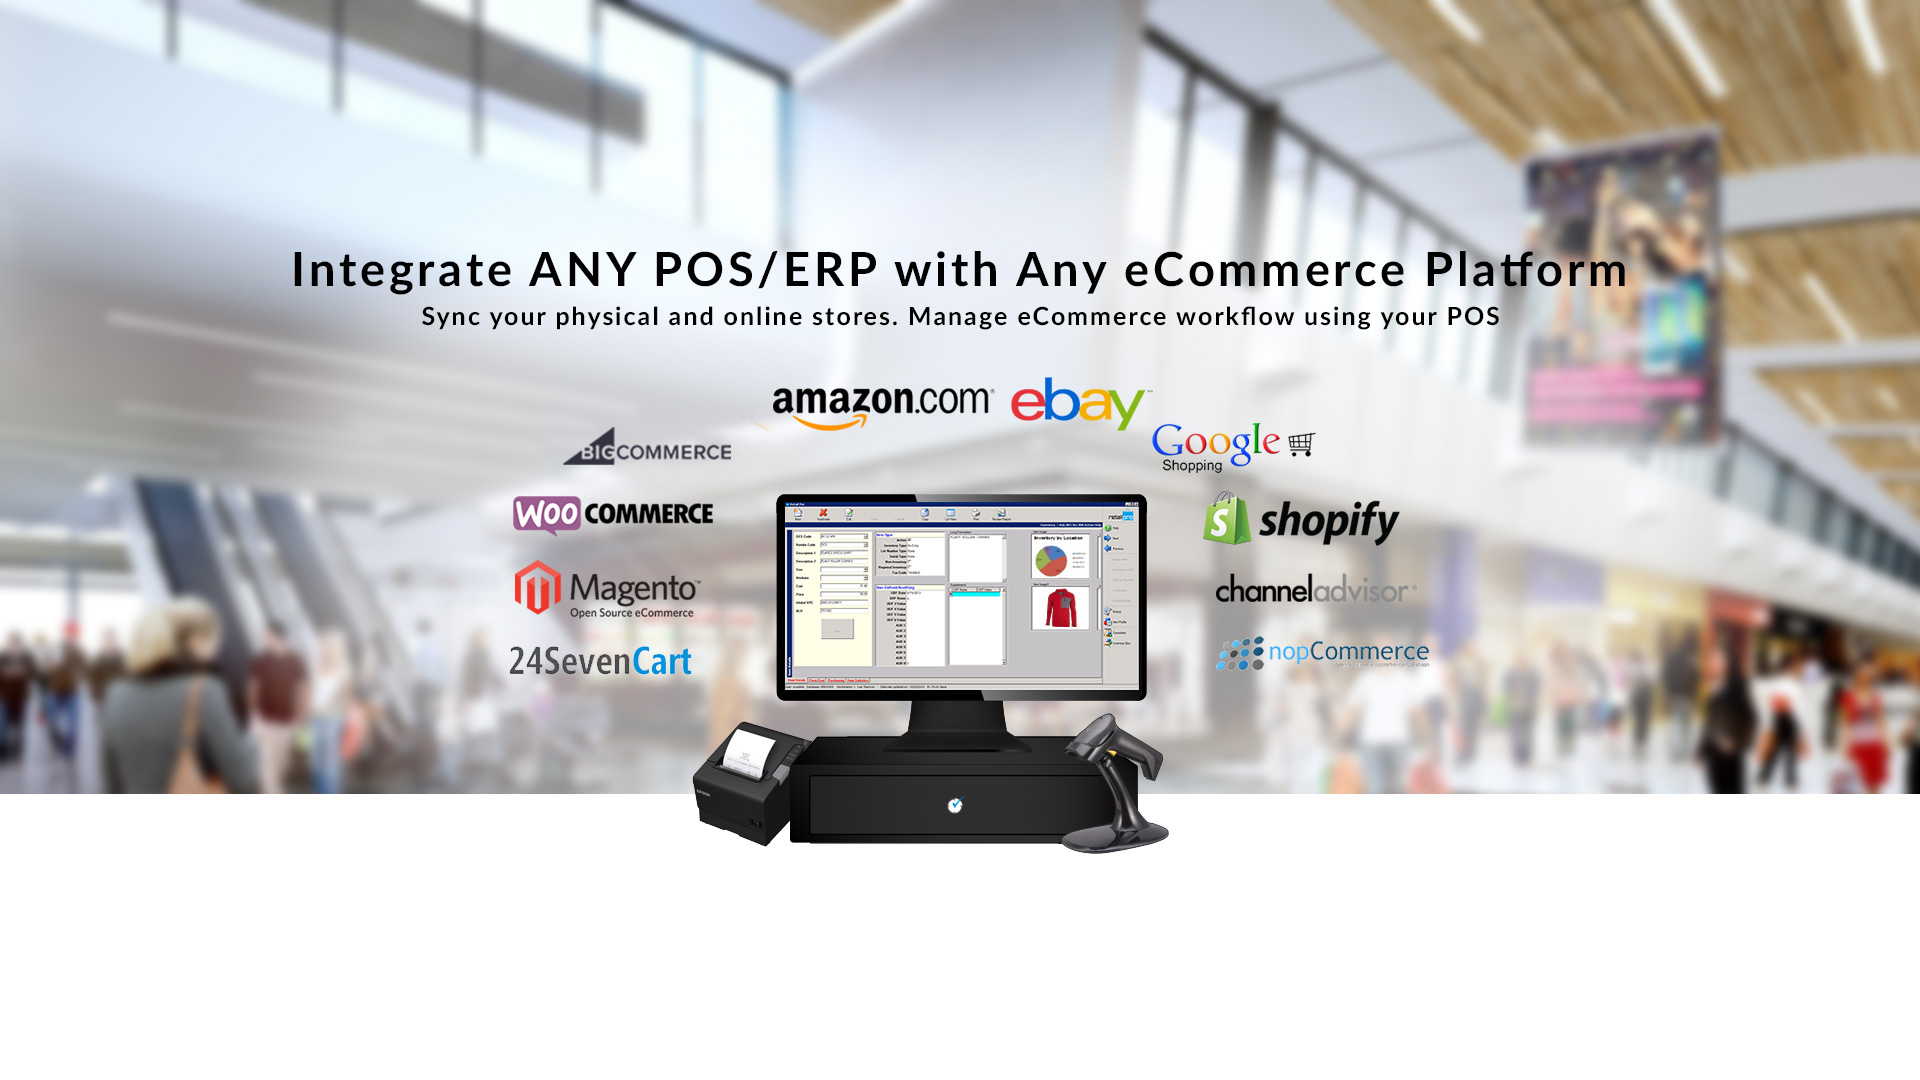 Store Banne Commerce Omnichannel Ecommerce Retailing Platform For Physical Stores